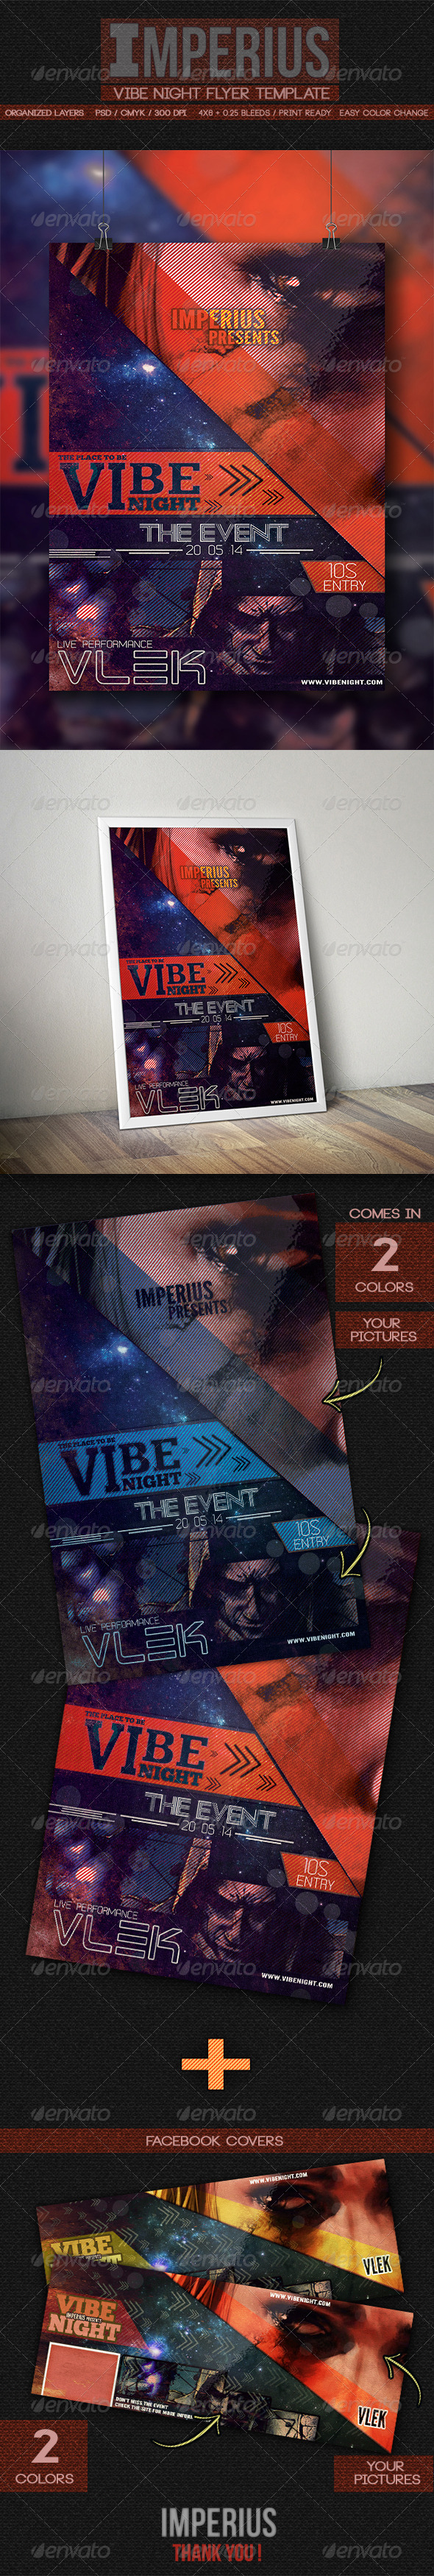 GraphicRiver Vibe Night Flyer 7773271